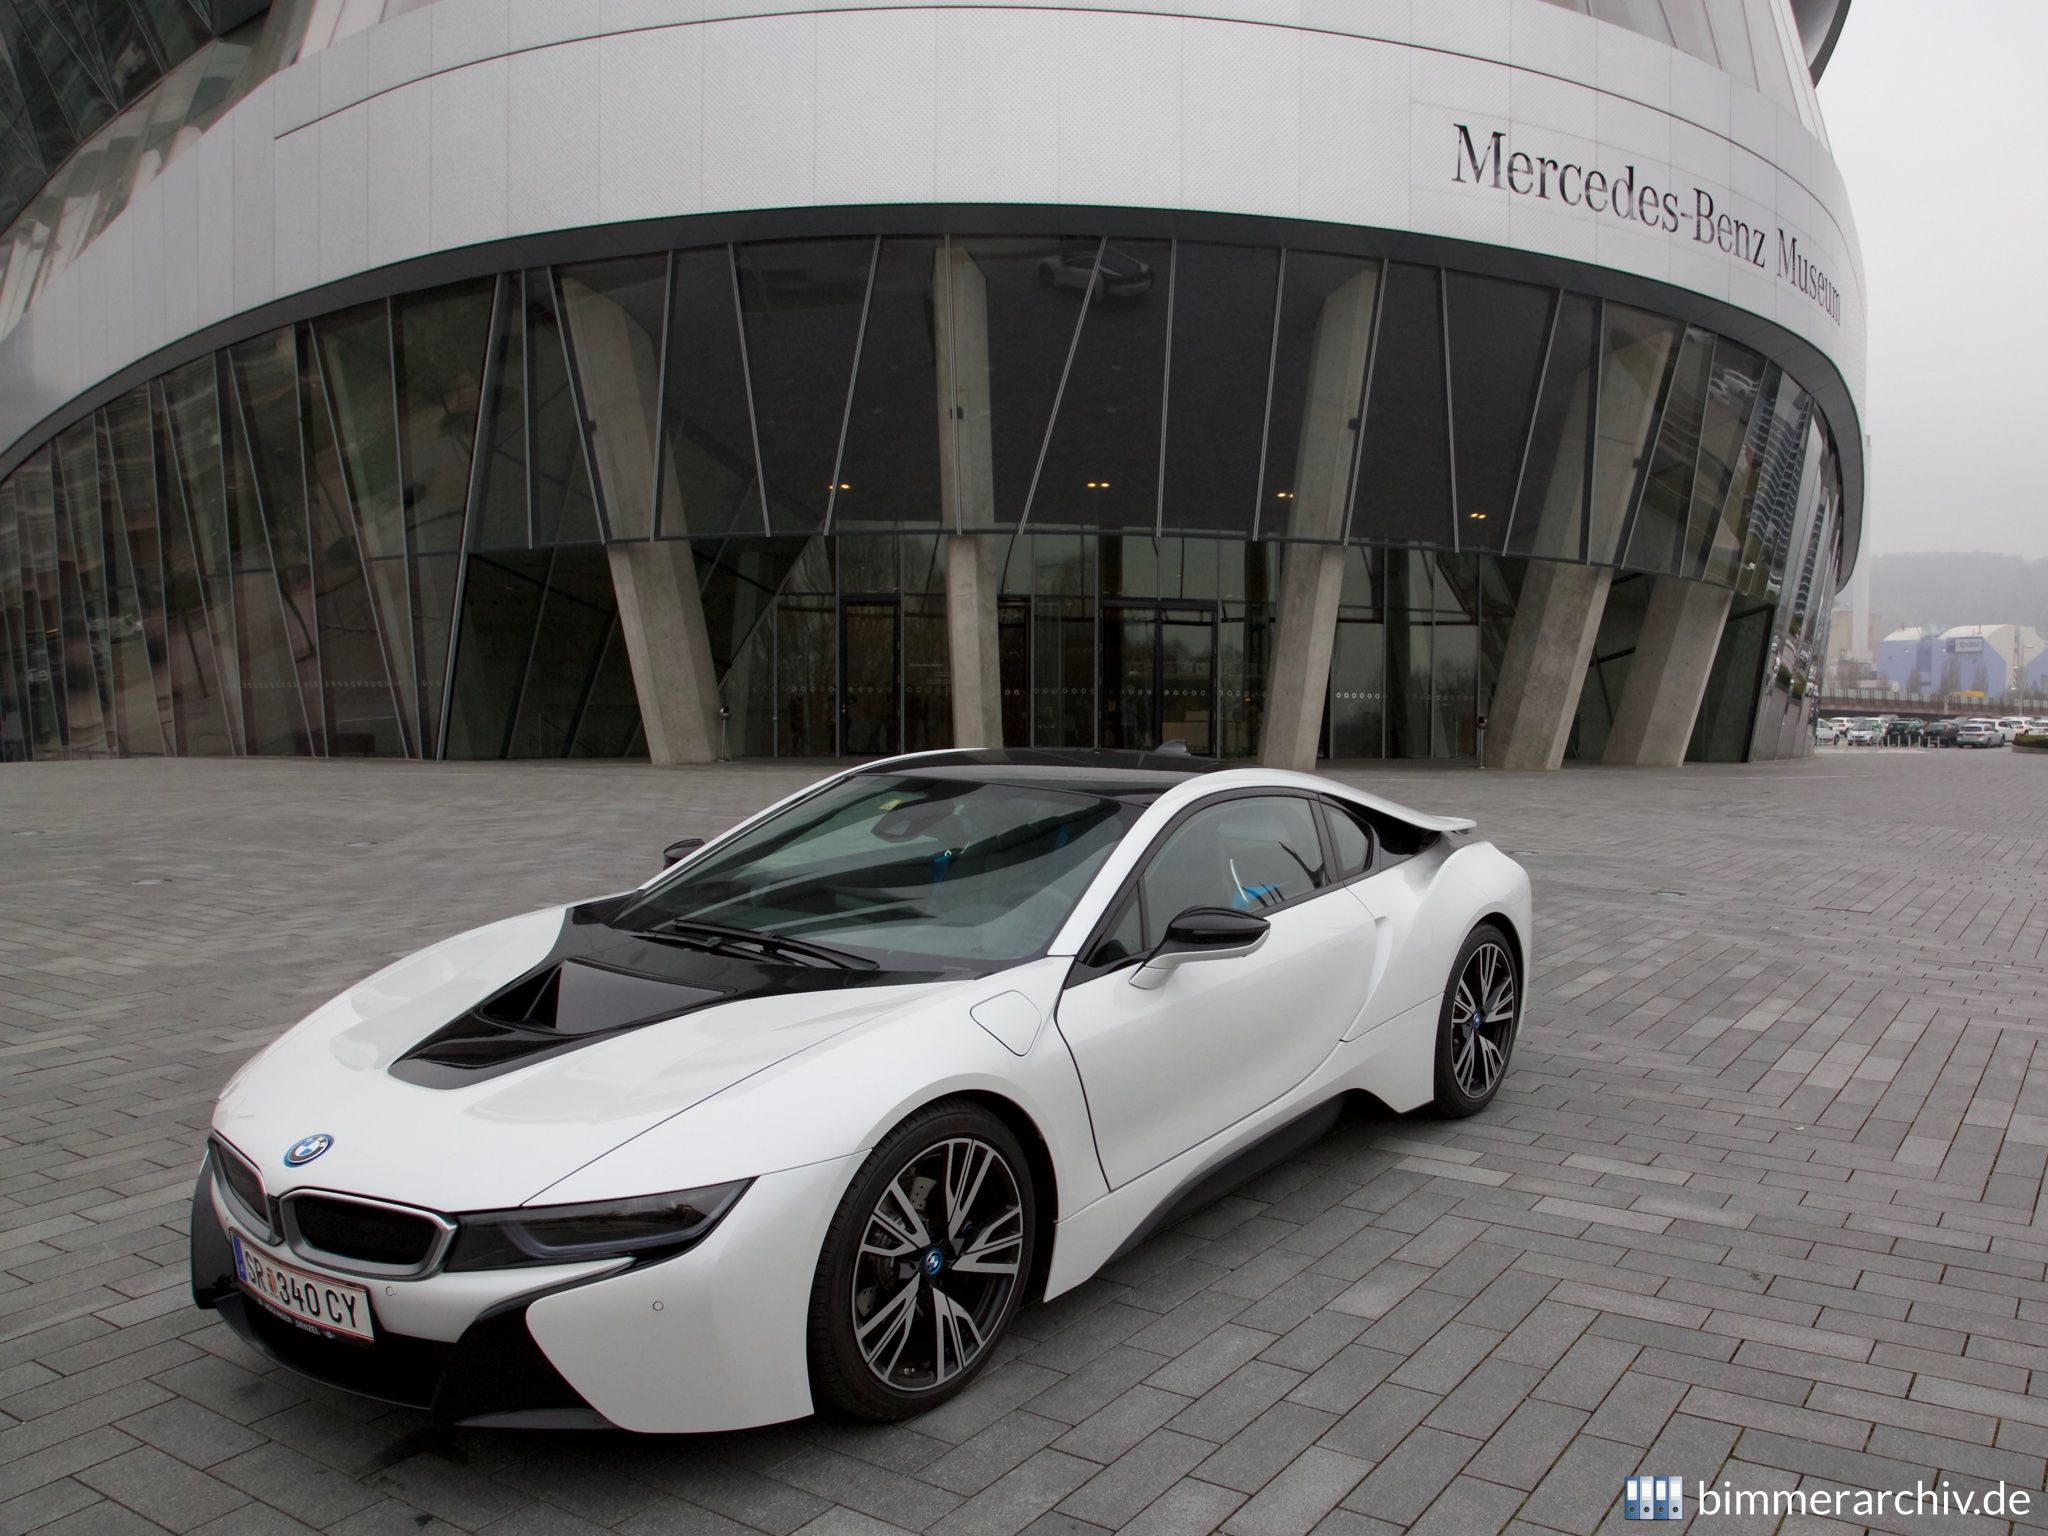 photo mercedes benz museum mercedes benz museum. Cars Review. Best American Auto & Cars Review